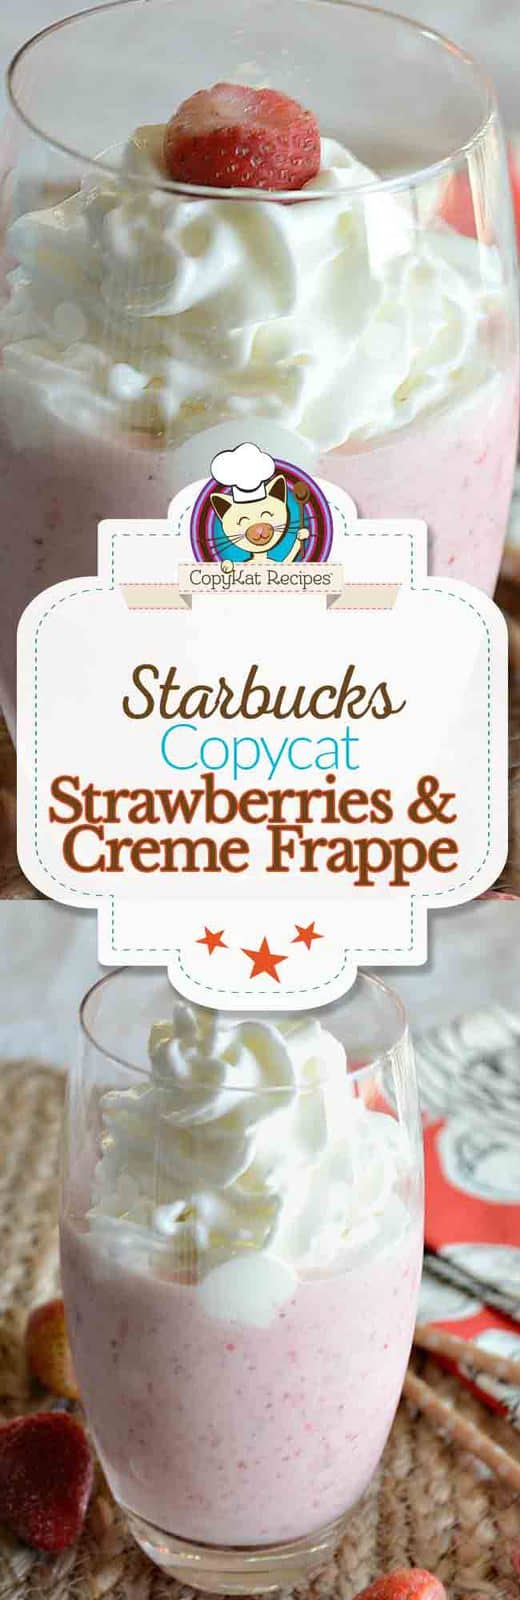 Try this amazing coffee house treat at home.  This copycat recipe for Starbucks Strawberry and Creme will have you amazed.